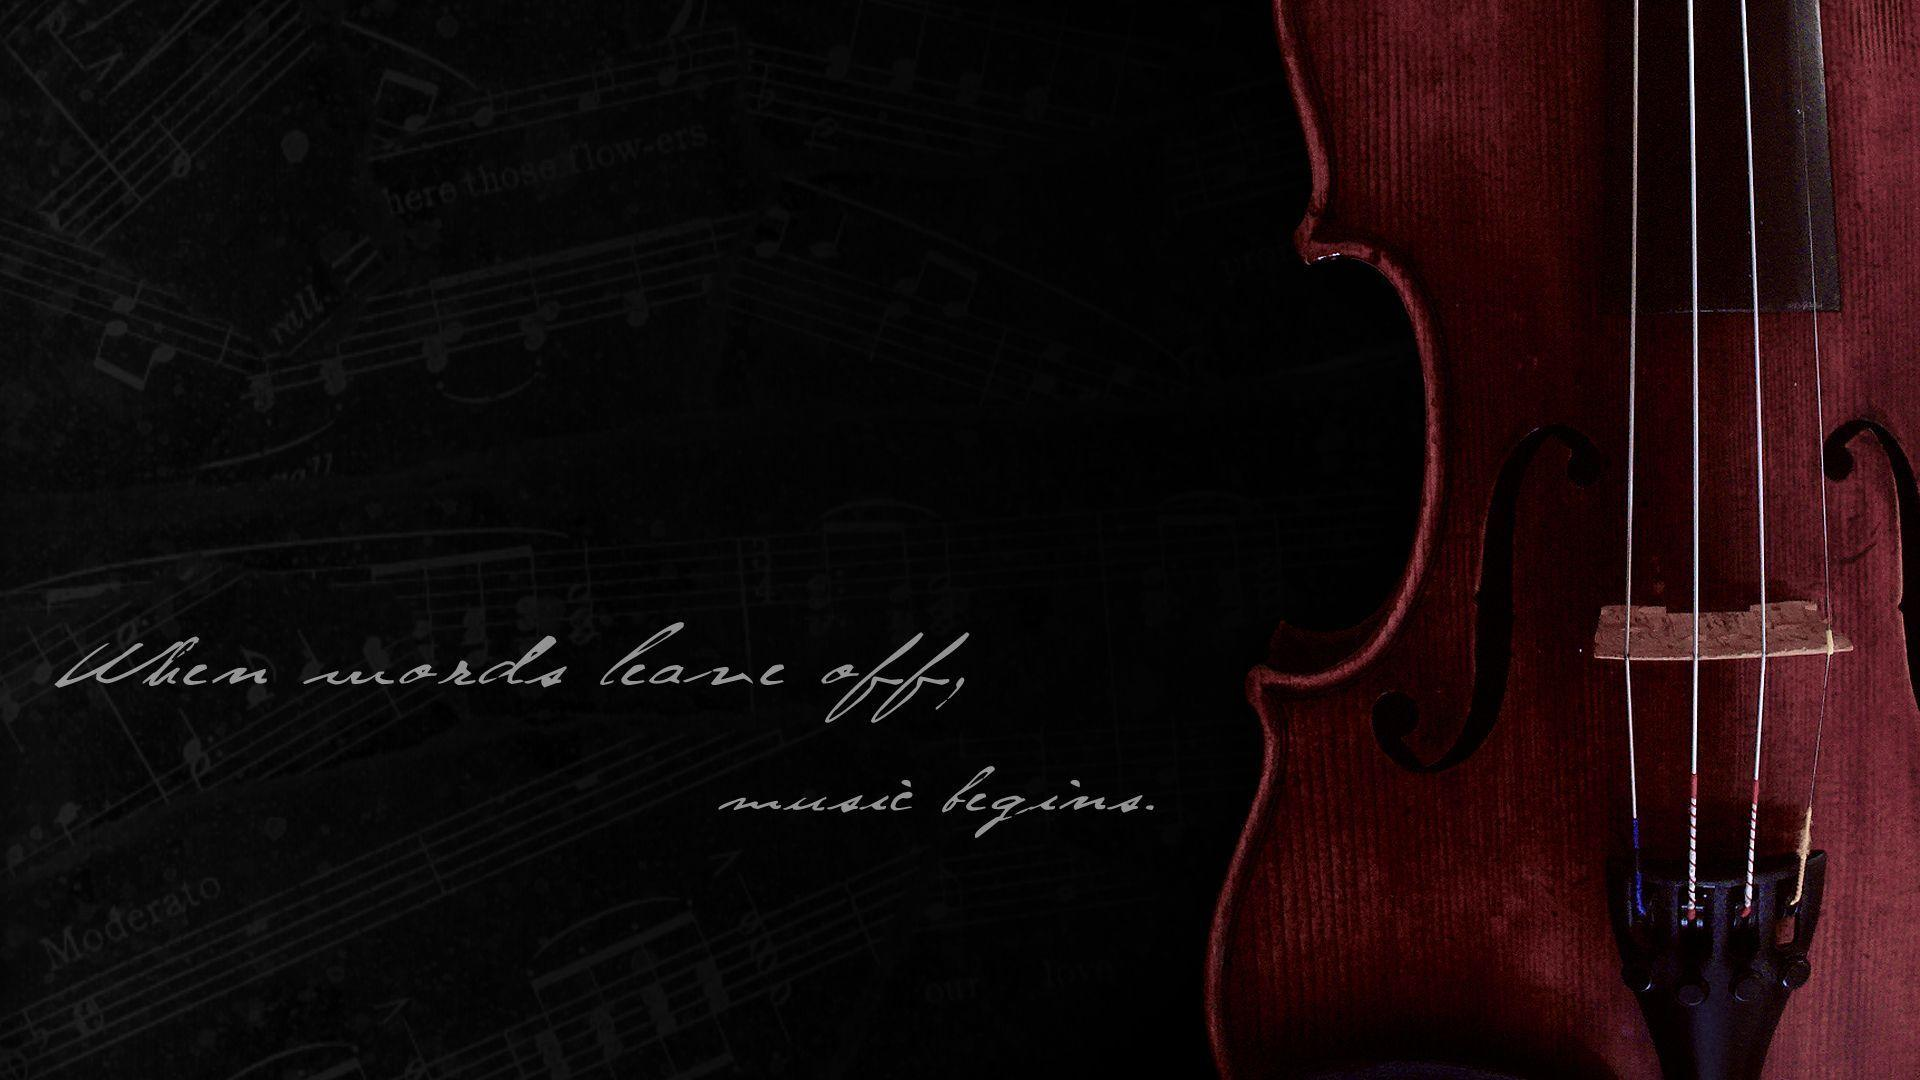 Violin Wallpaper by xerix93 on DeviantArt